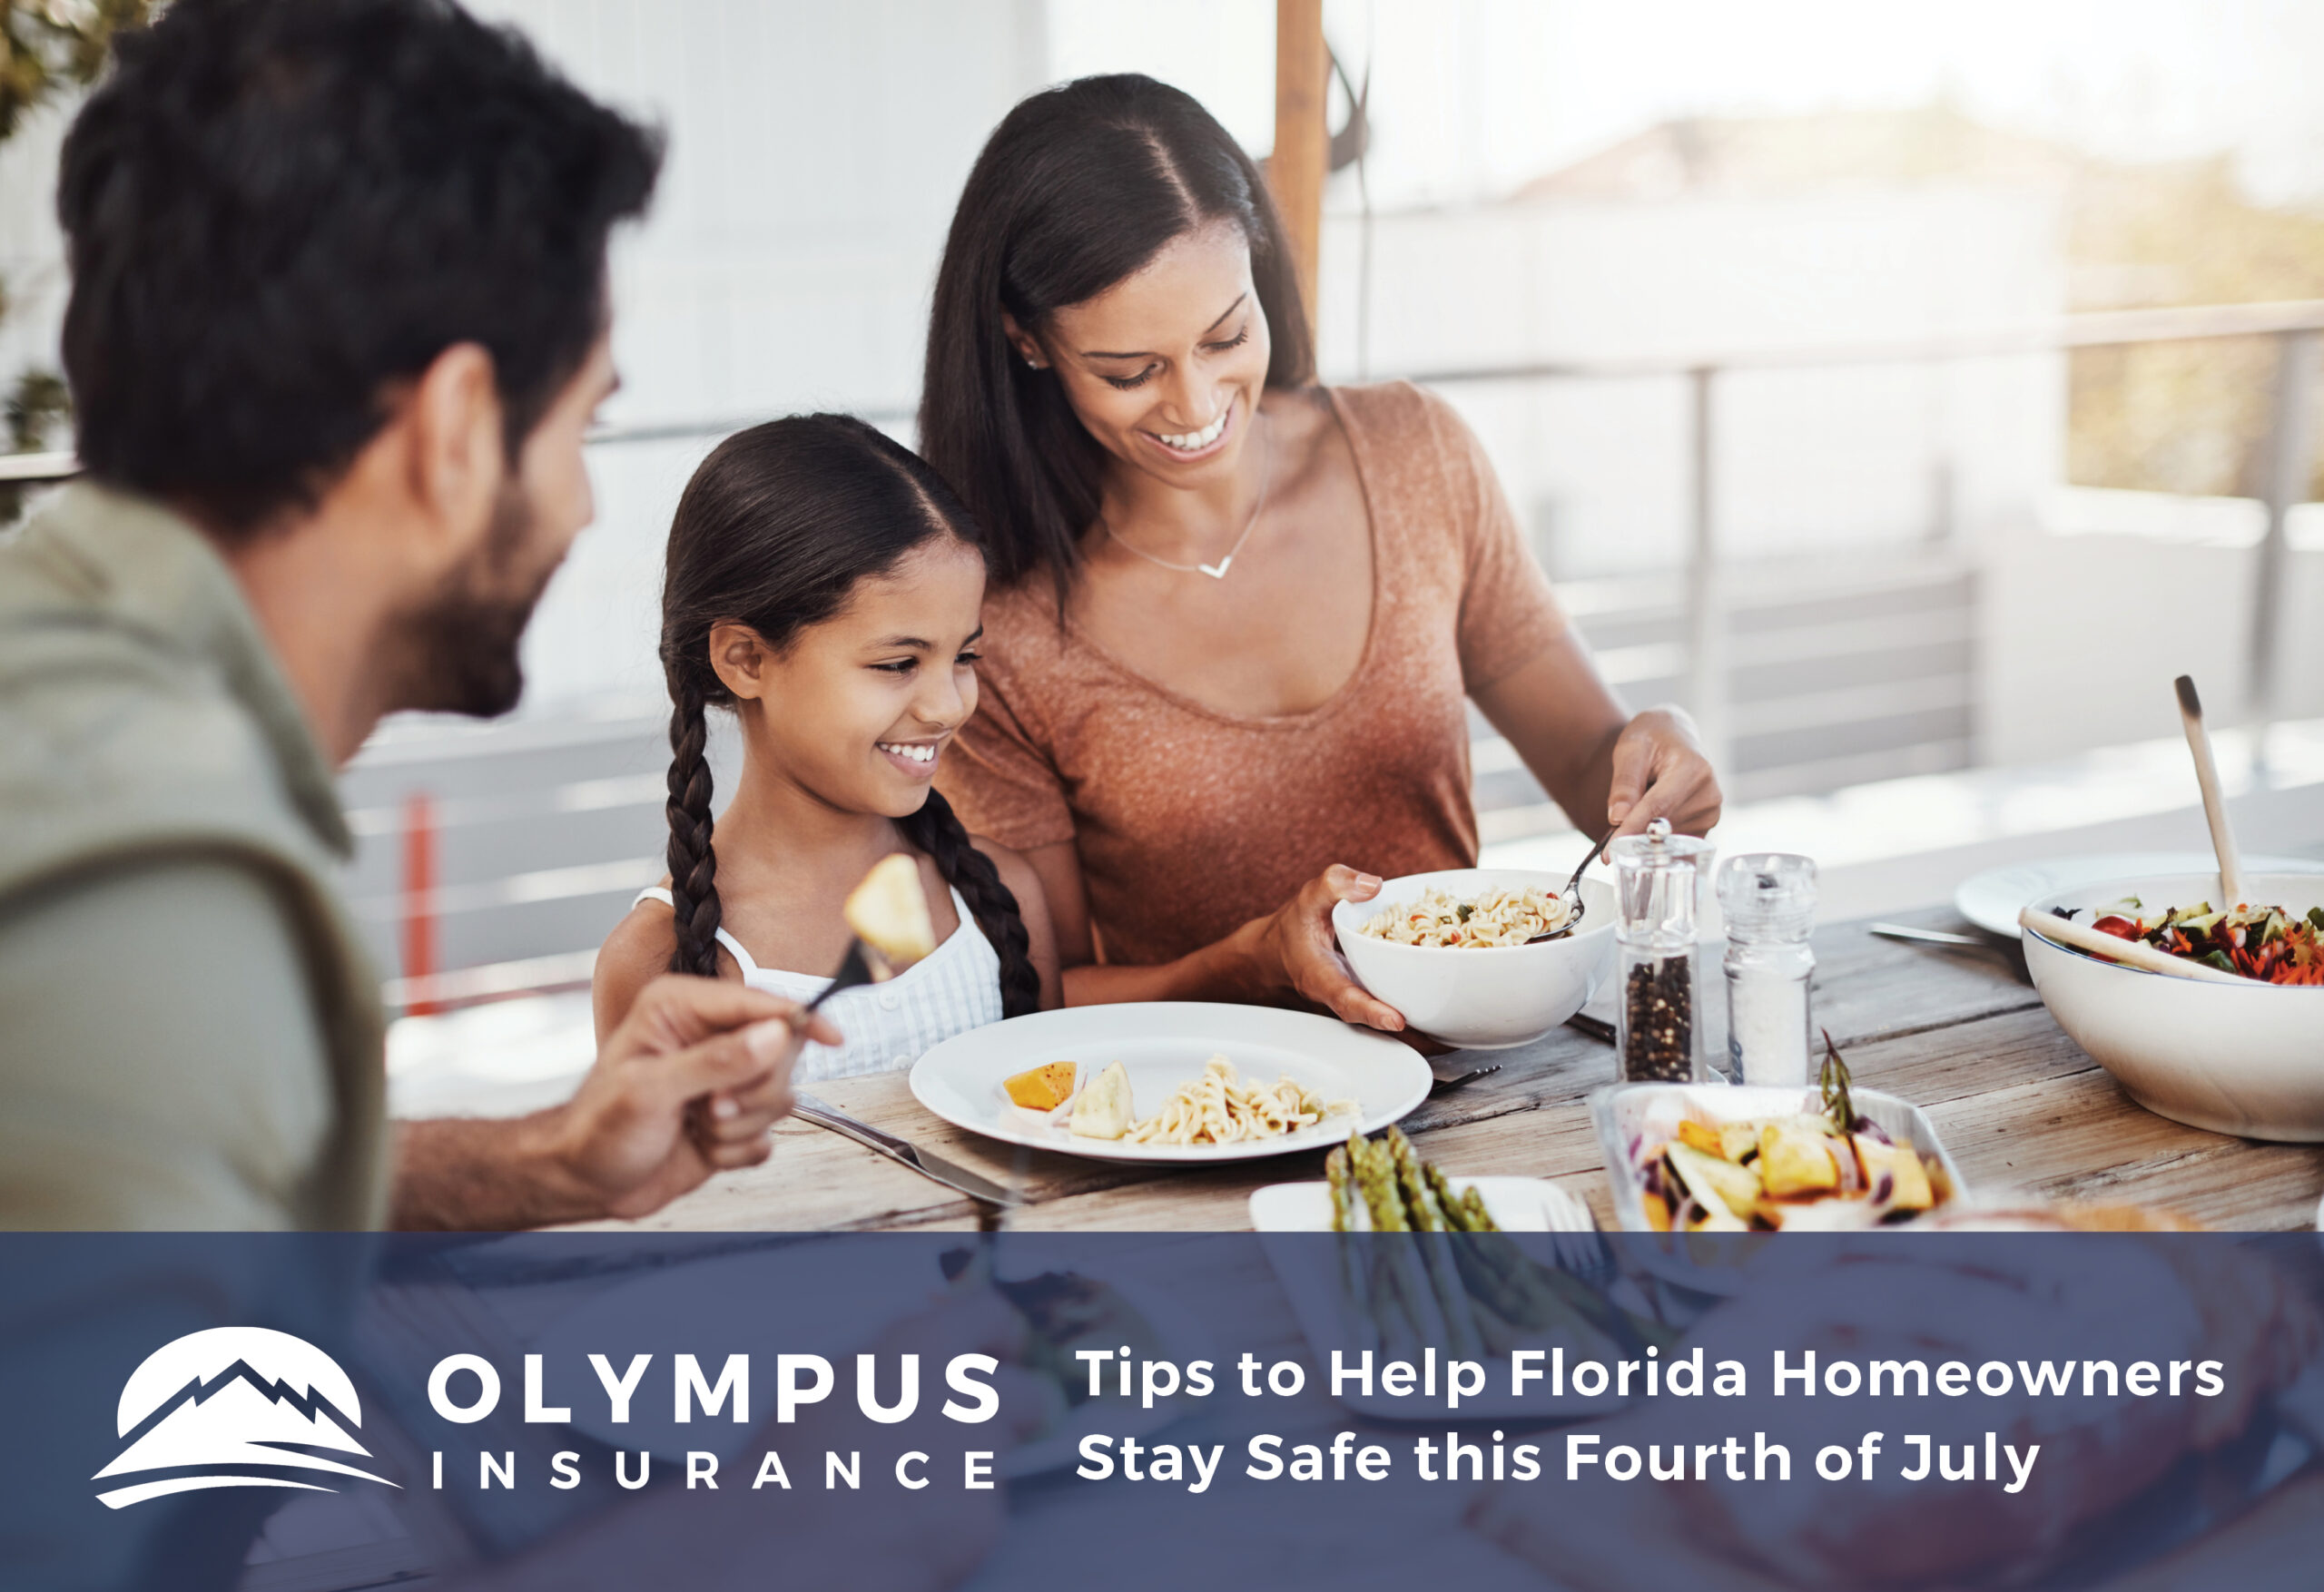 Tips to Help Florida Homeowners Stay Safe this Fourth of July